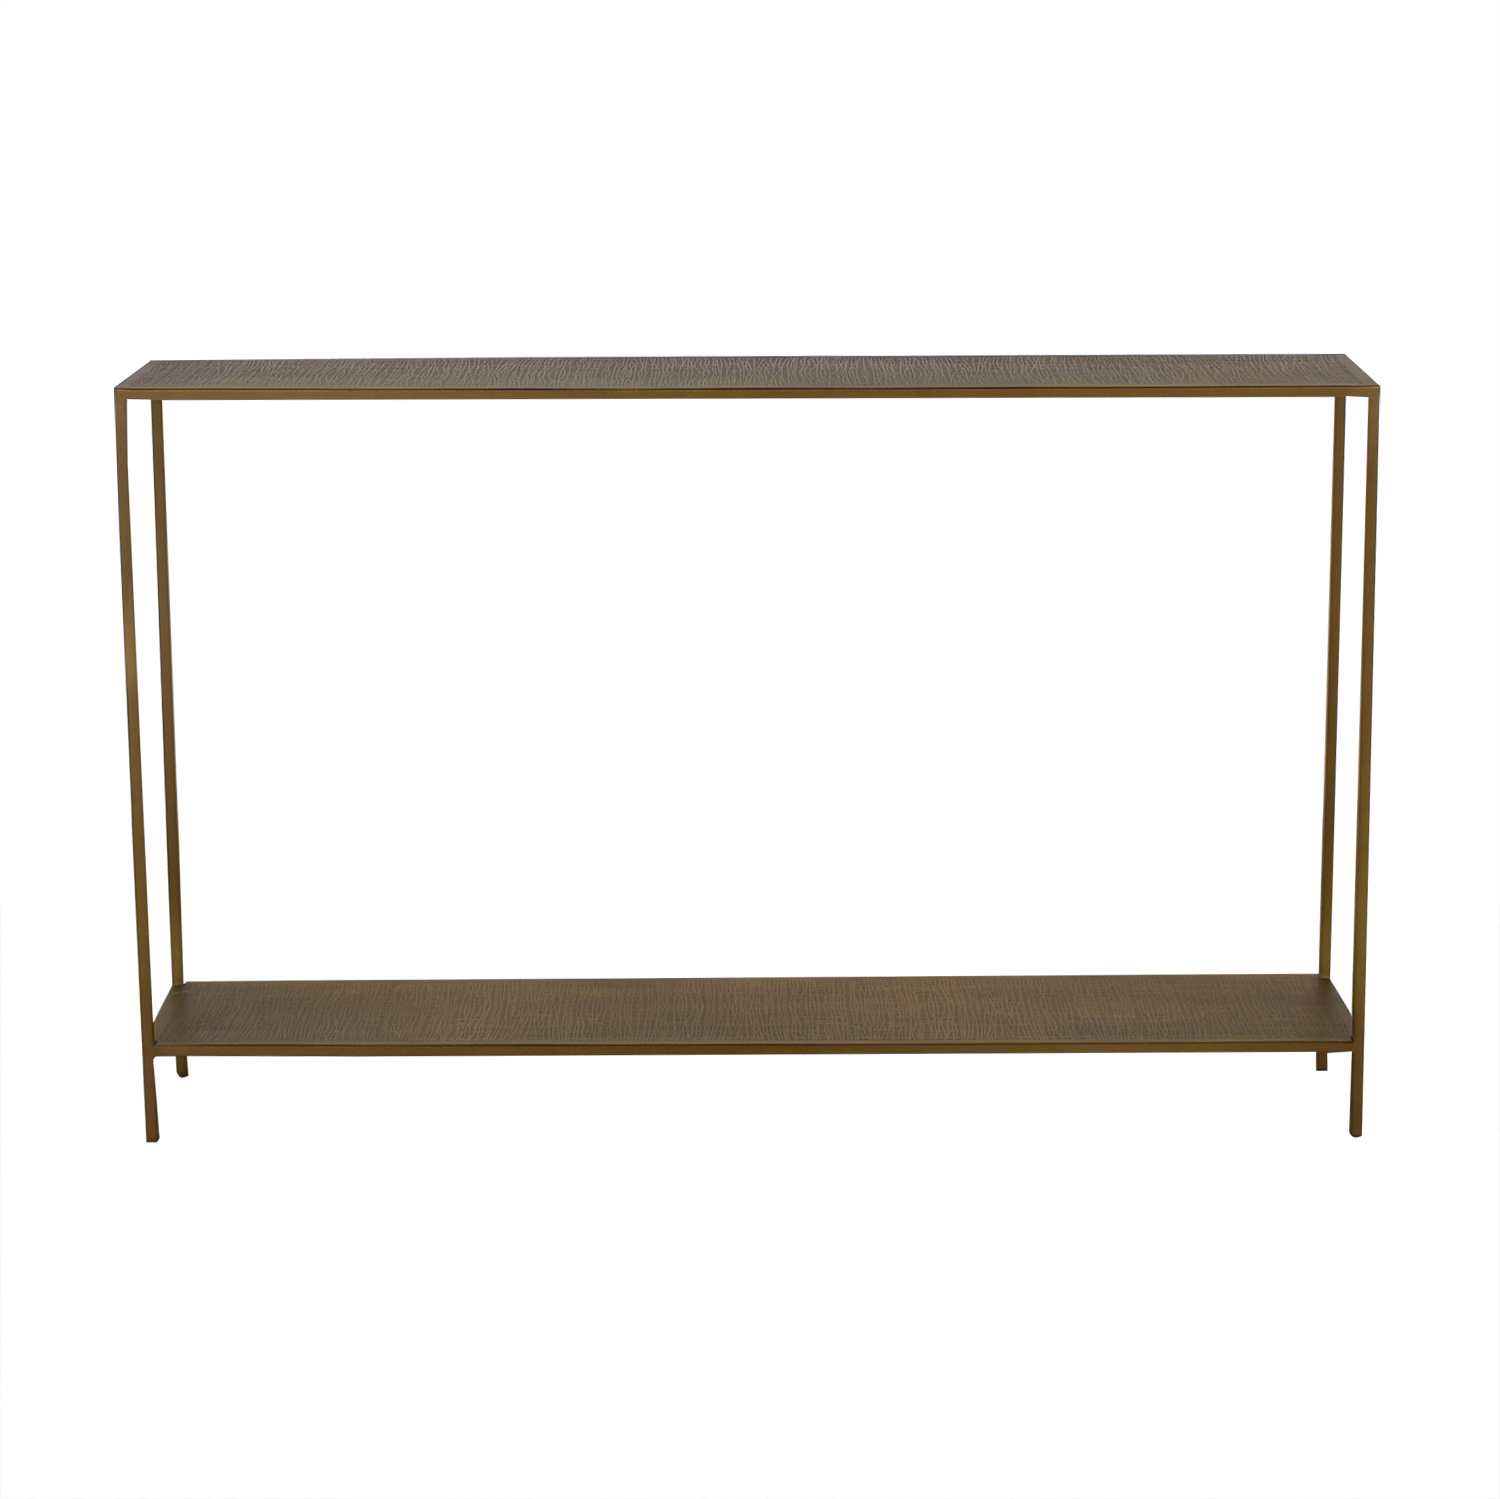 Crate & Barrel Crate & Barrel Jacque Console Table dimensions